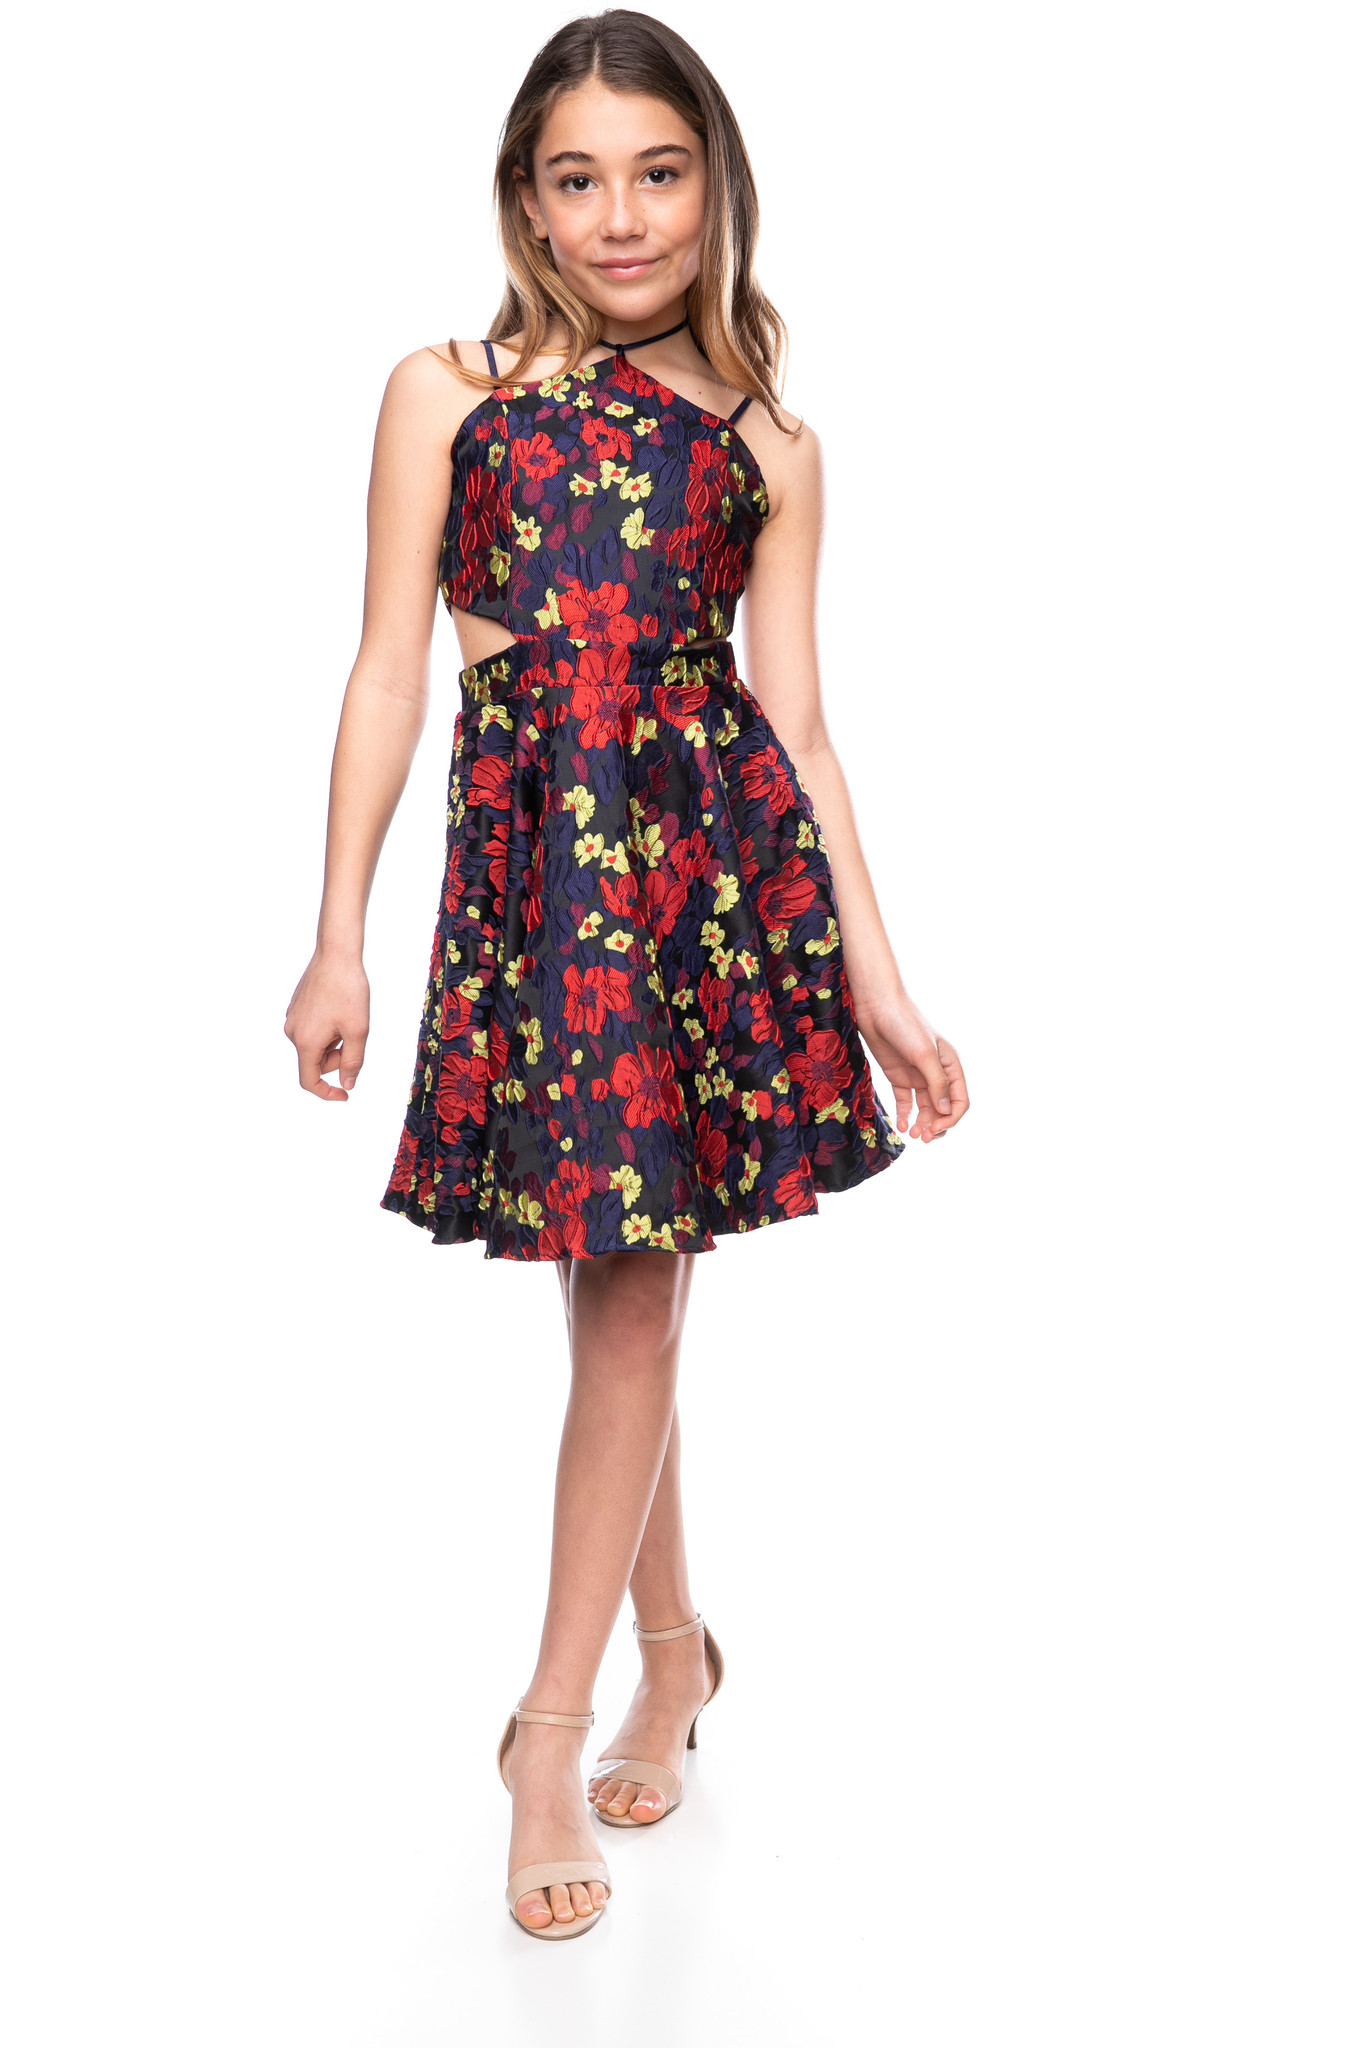 Tween Girls Floral Halter Dress with Open Sides in Longer Length full length view.